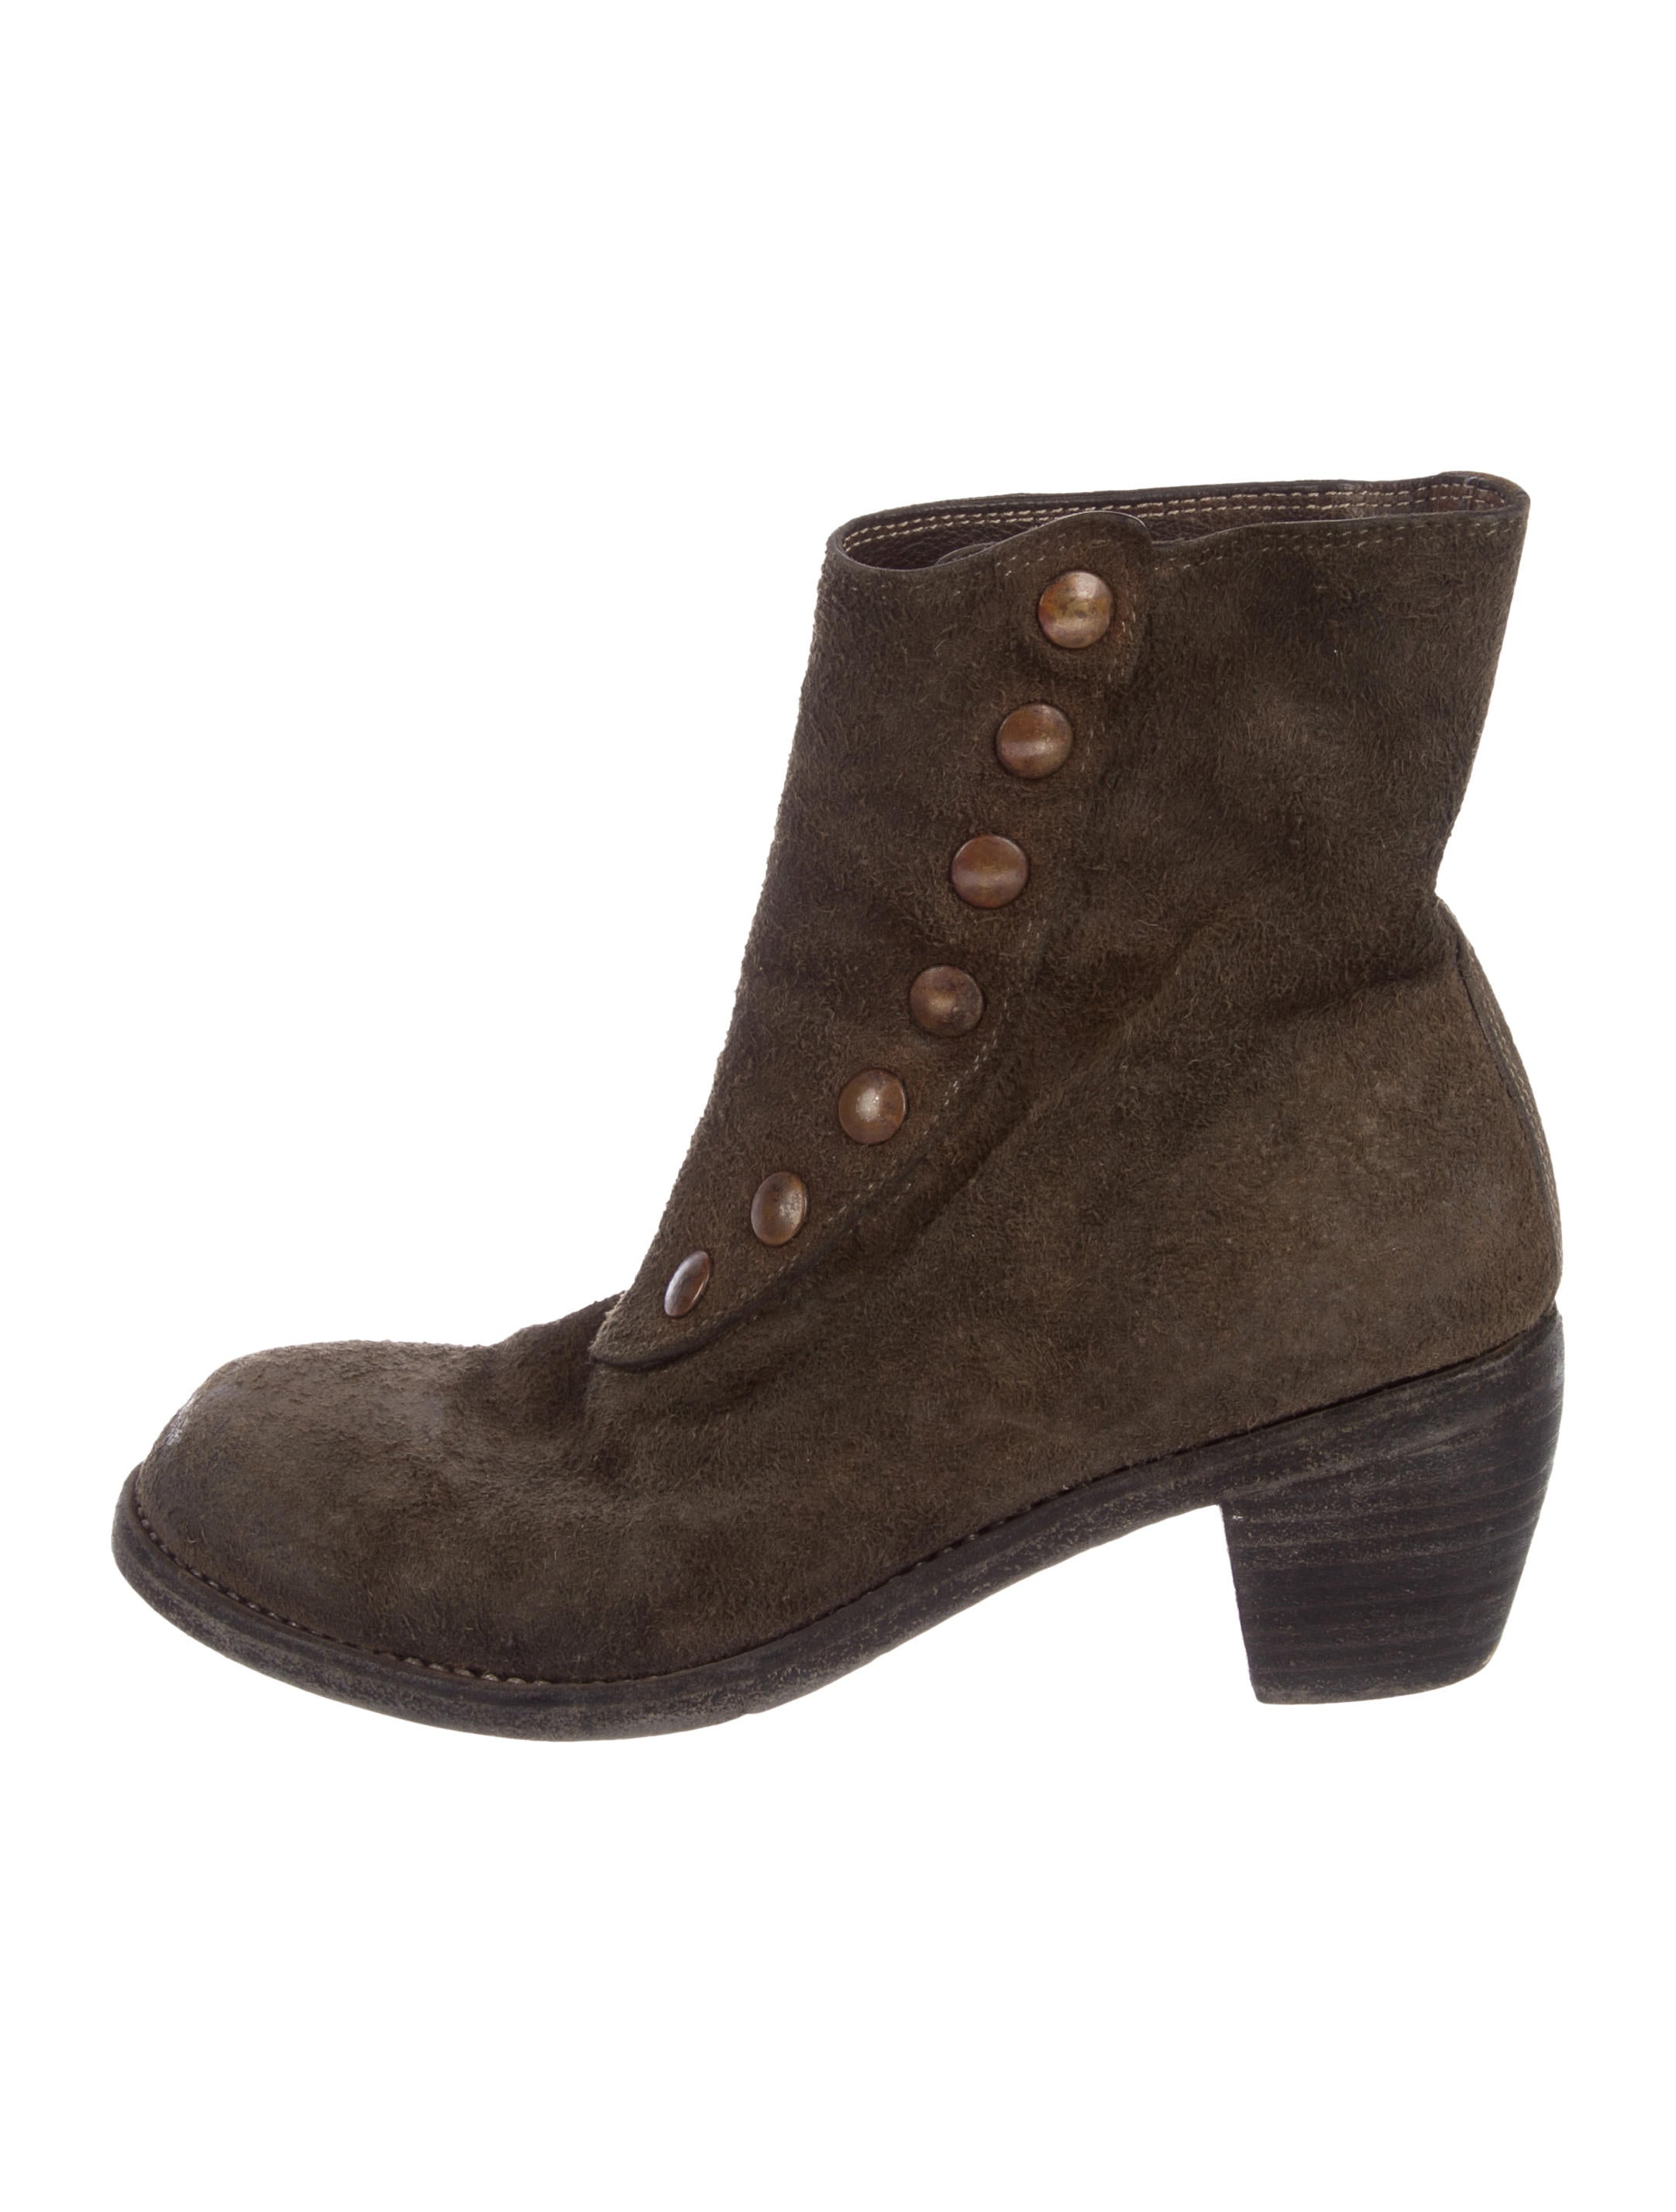 GUIDI Round toe ankle boots